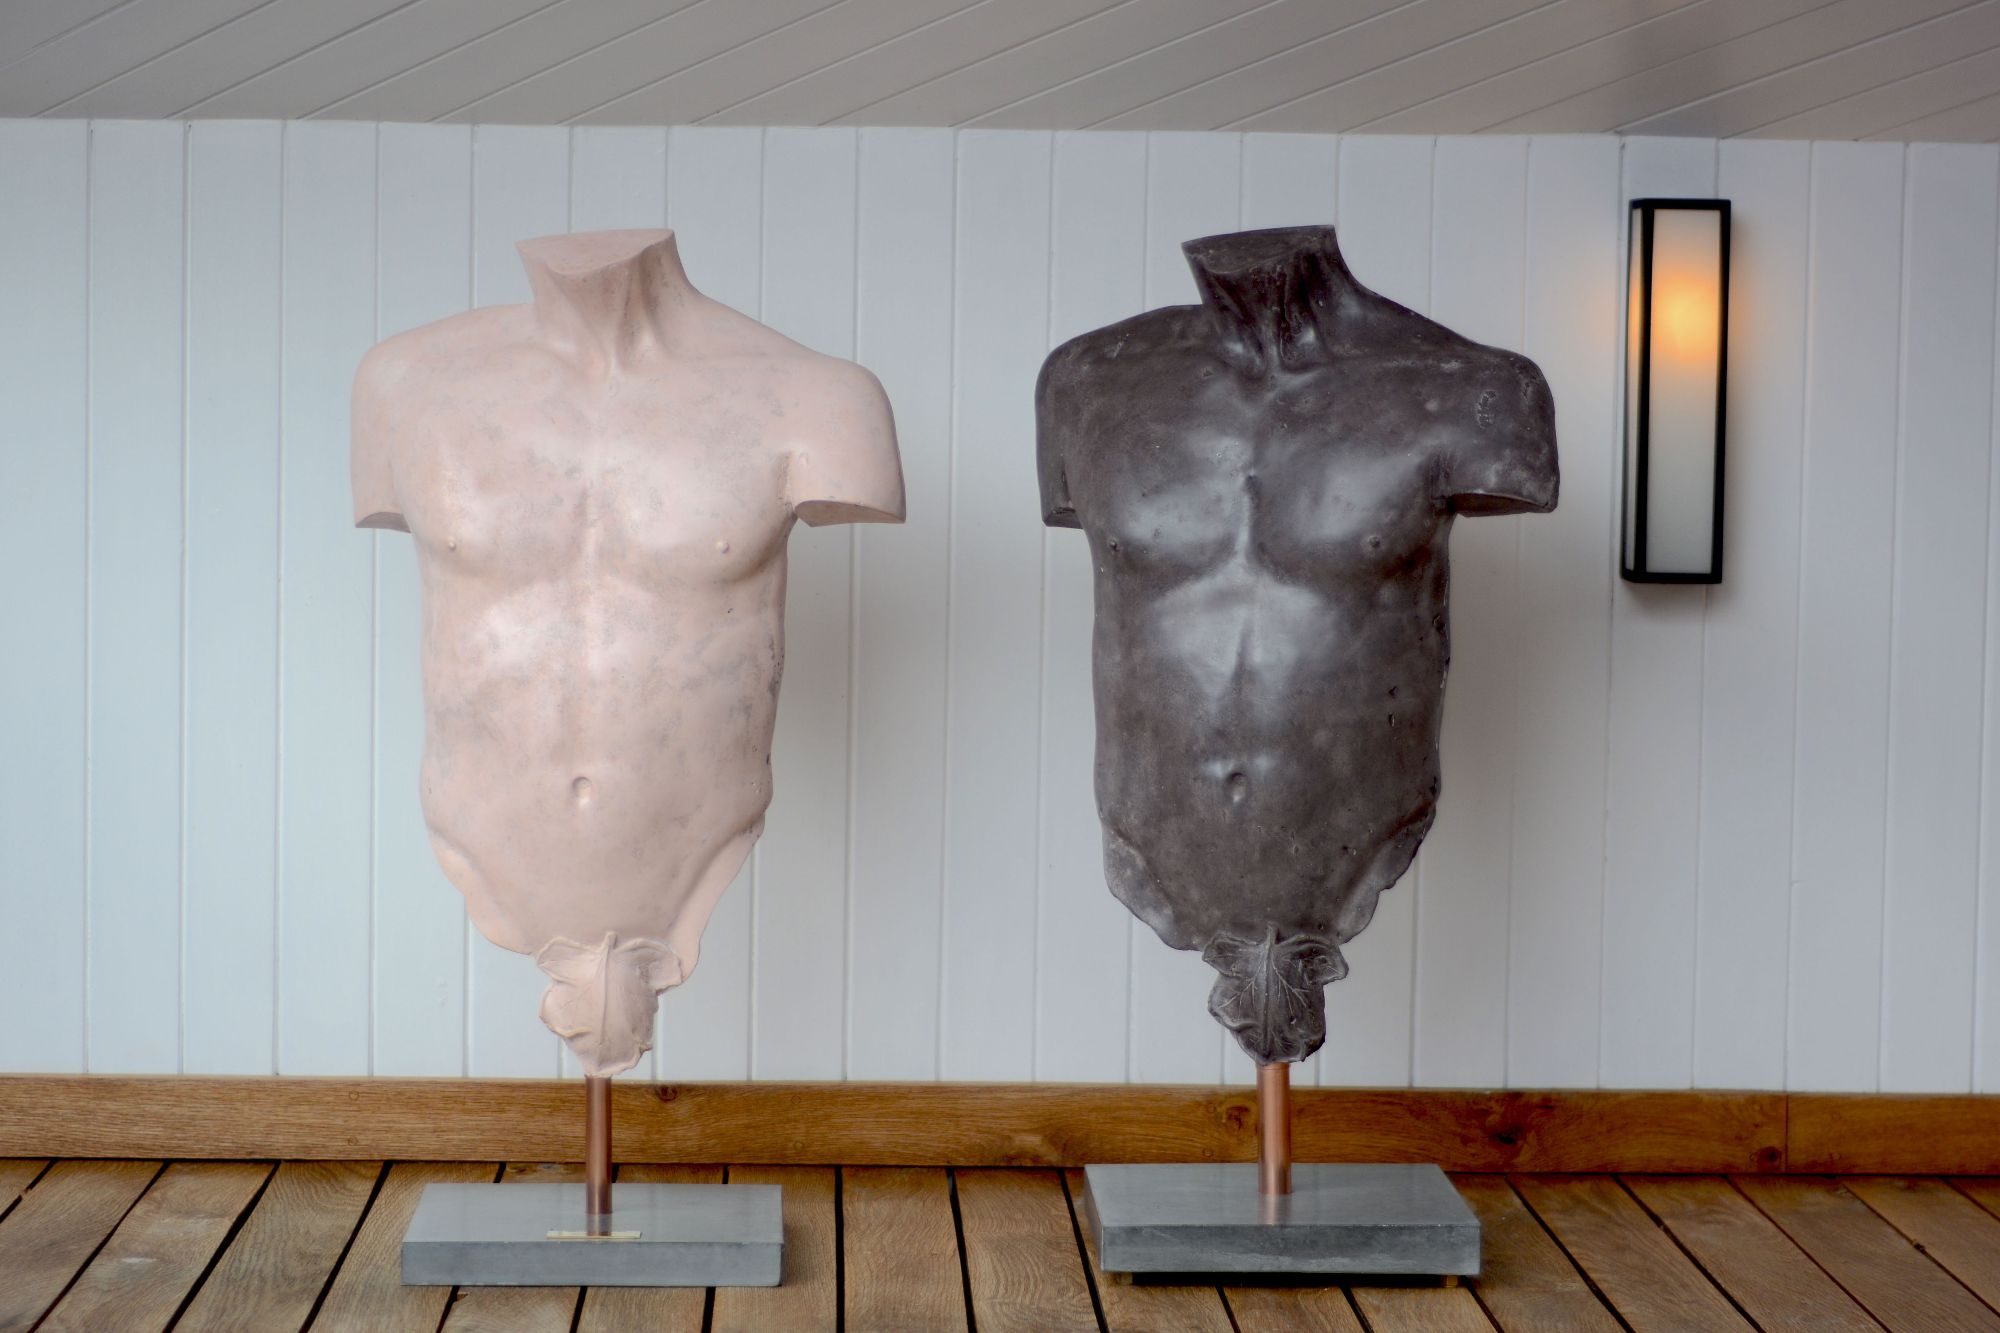 Pink and black polished concrete male torso sculptures